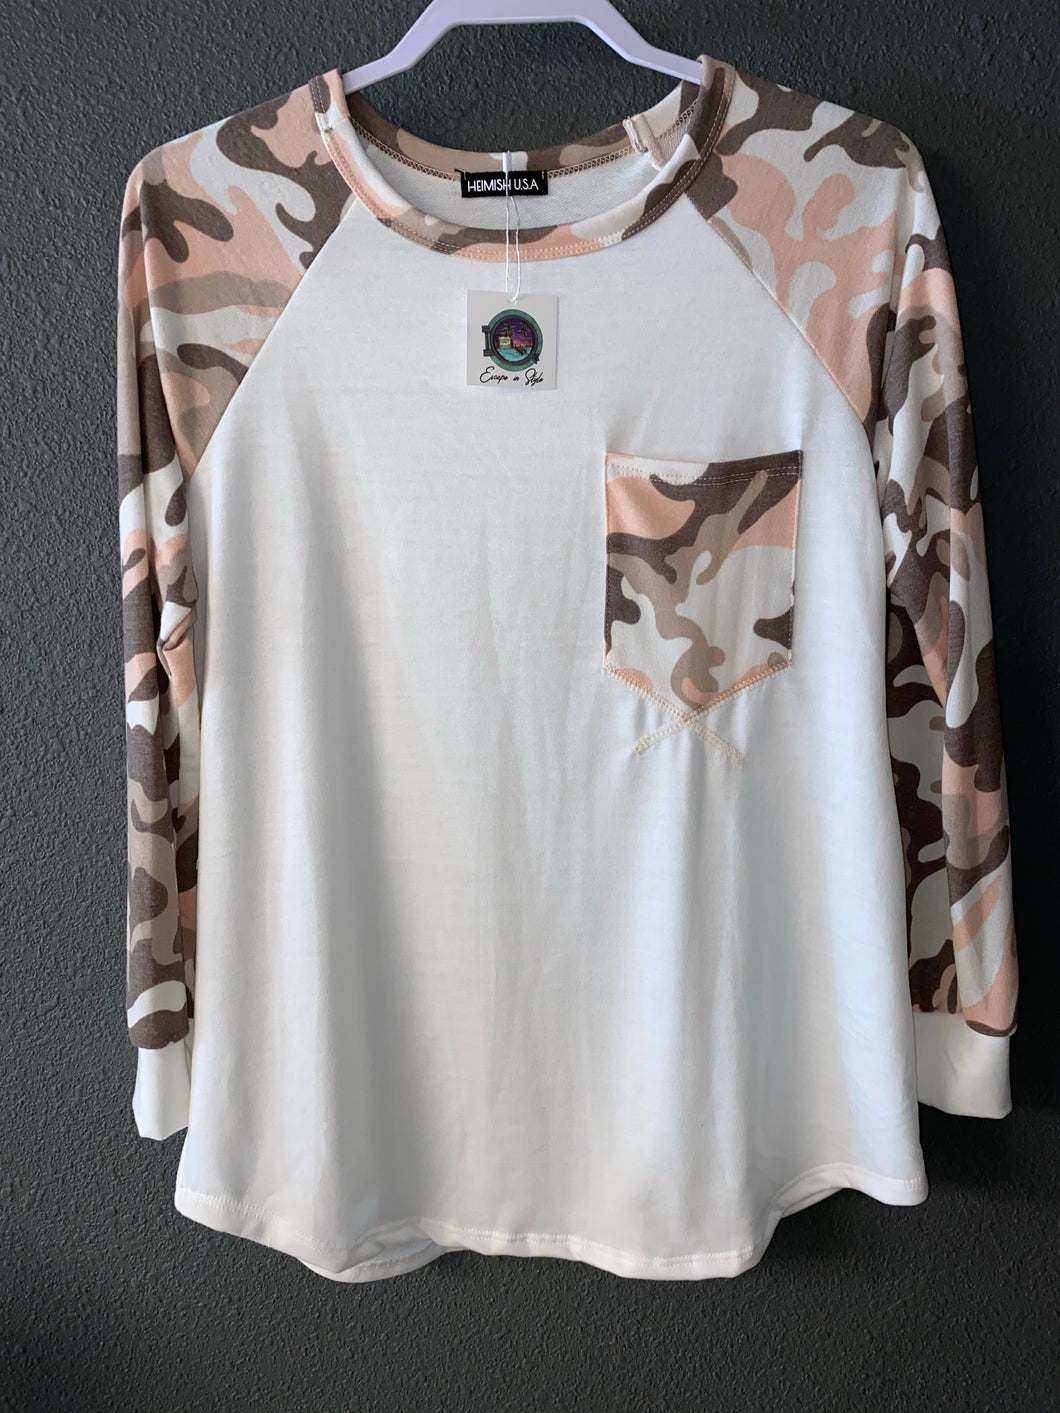 Ivory Top with Pink Camo Sleeves and Pocket